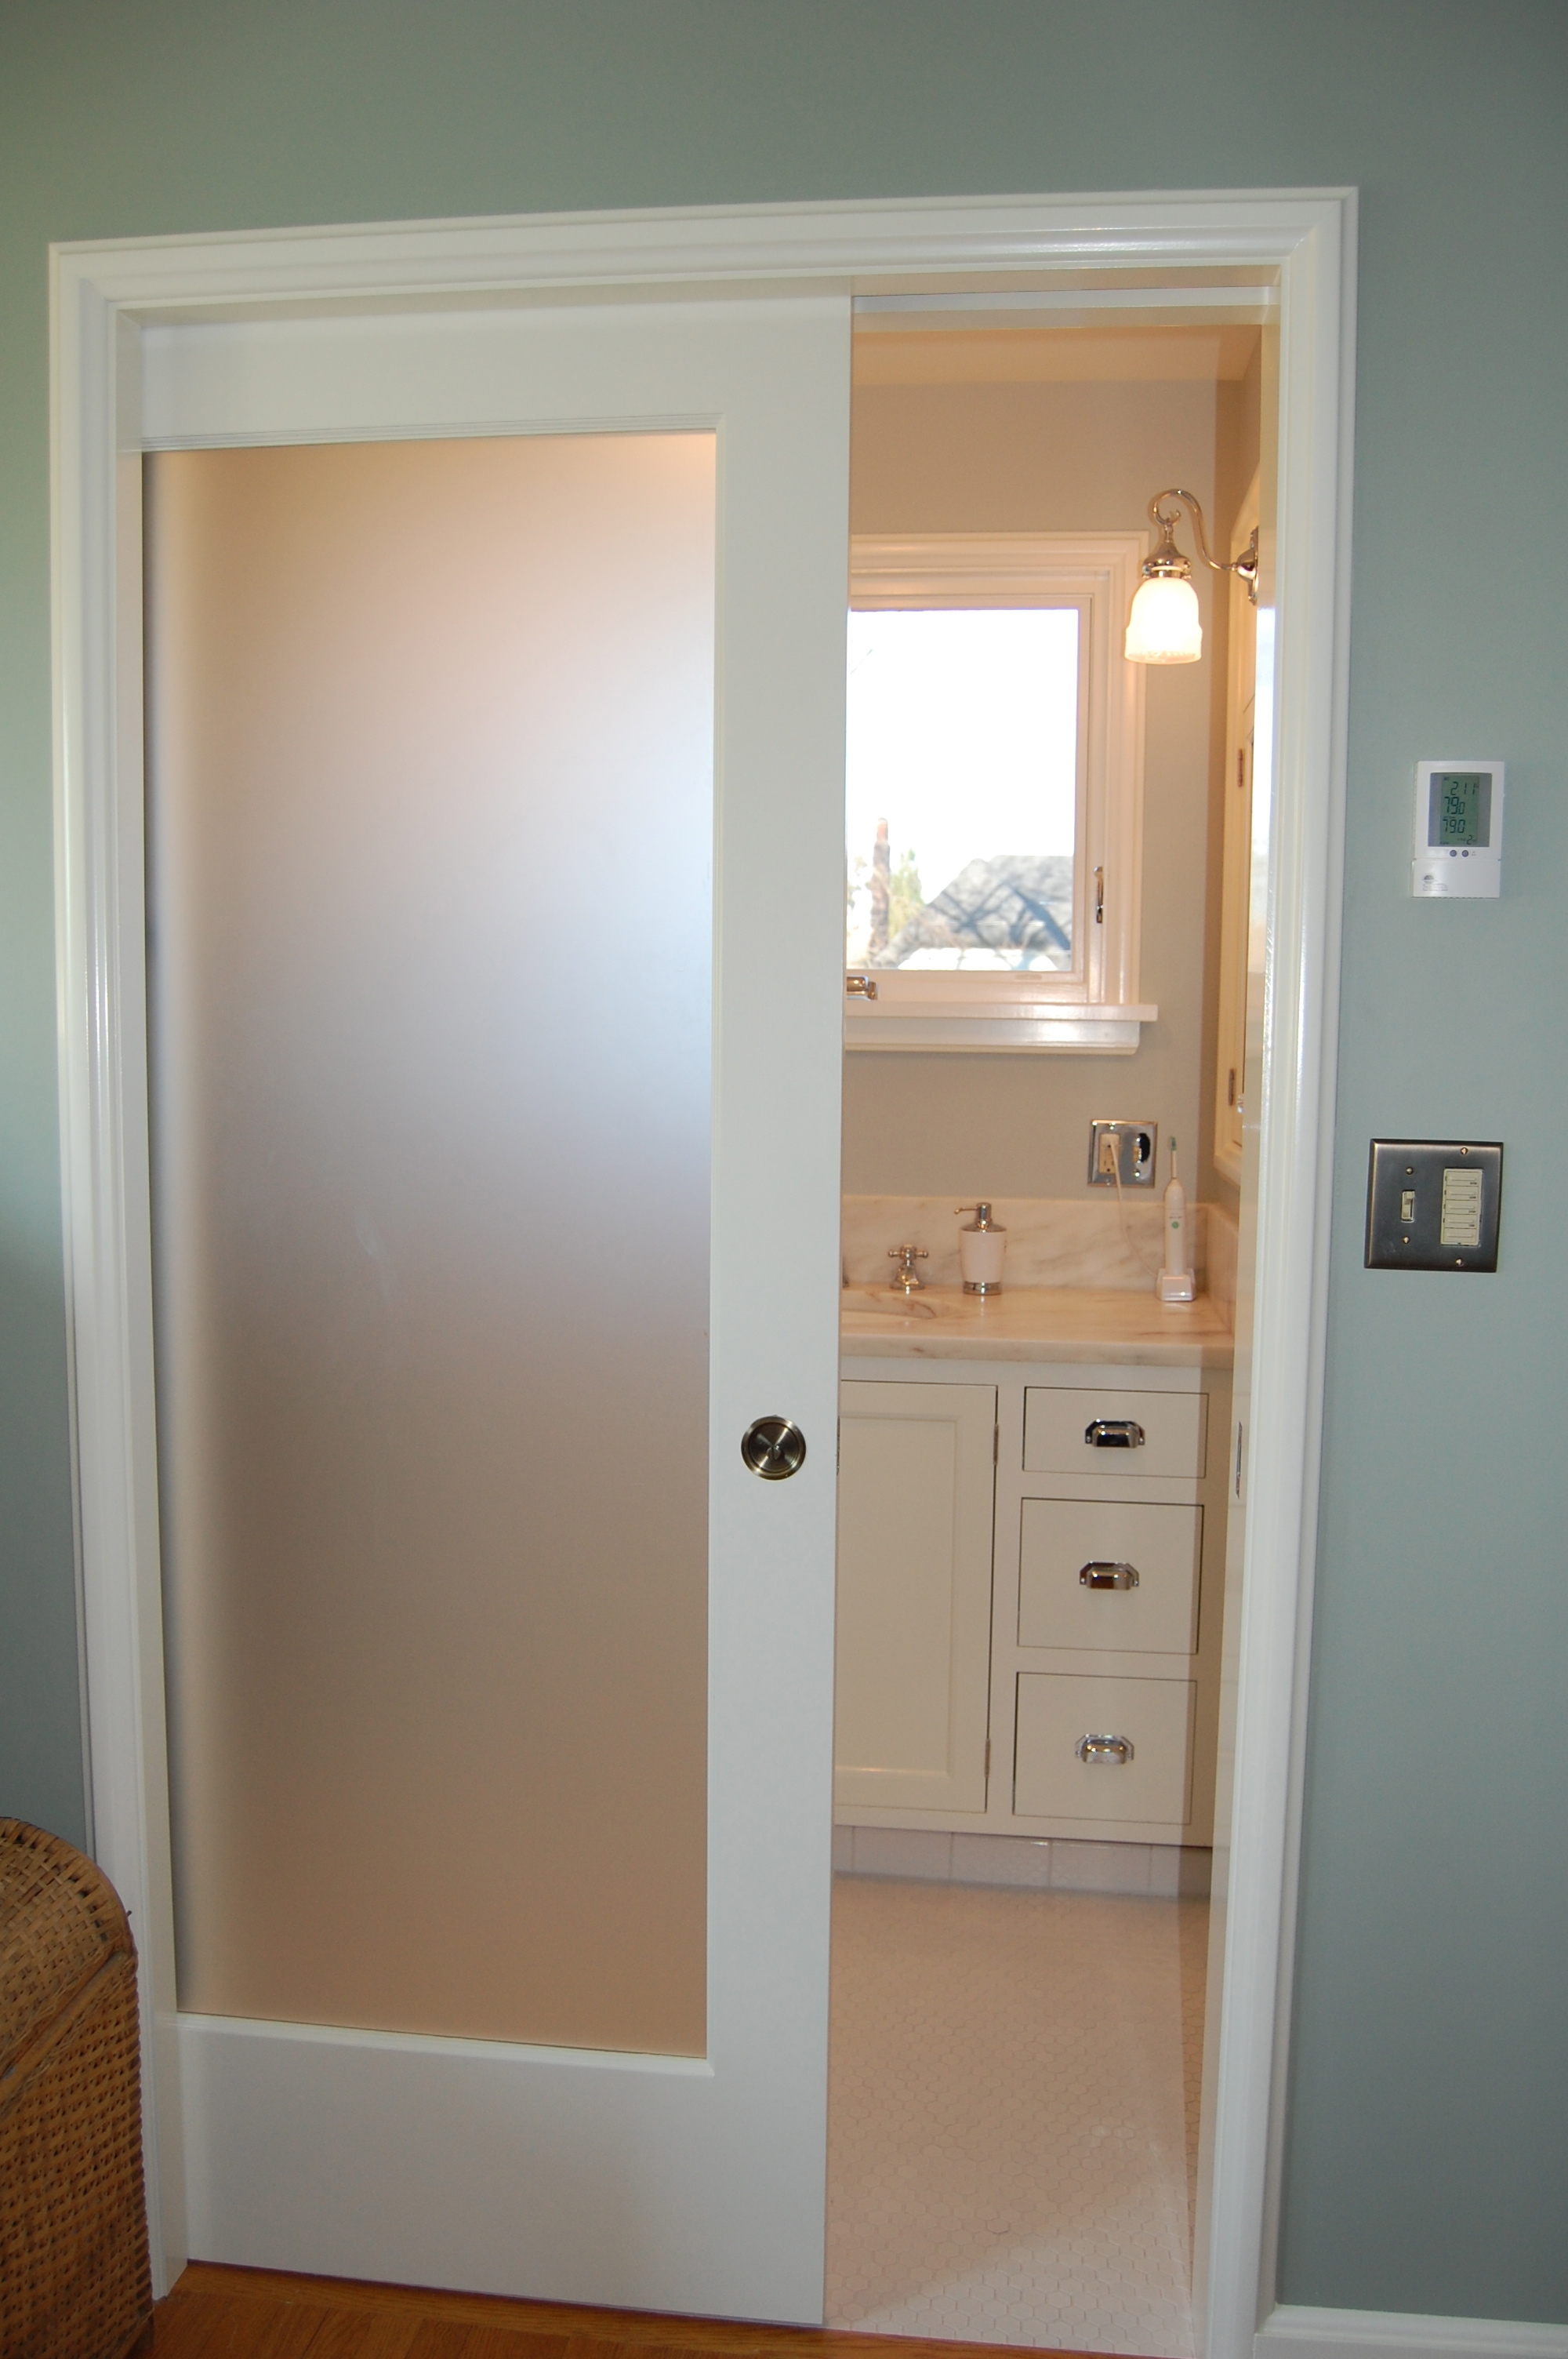 Permalink to Frosted Glass Interior Doors For Bathrooms